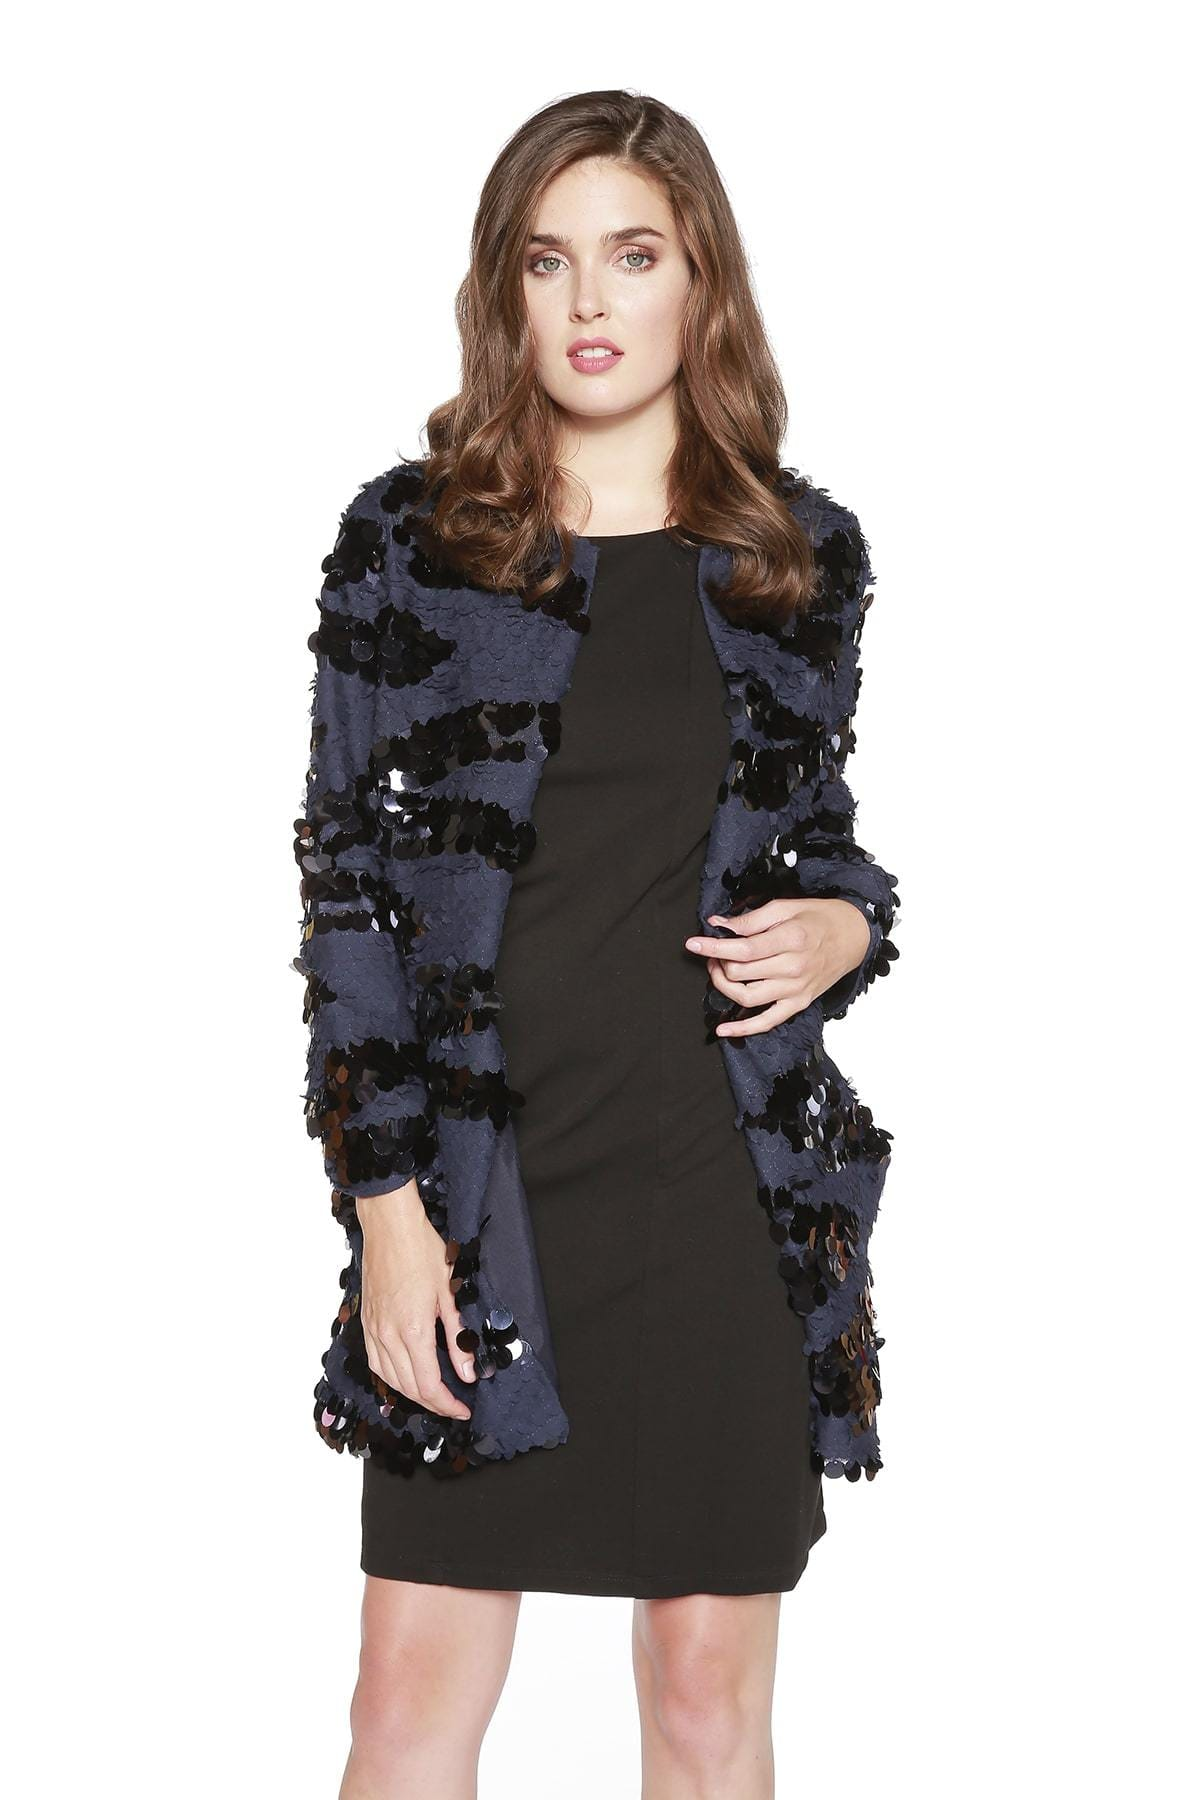 Eva Franco Coat Imogen Coat - Midnight Navy